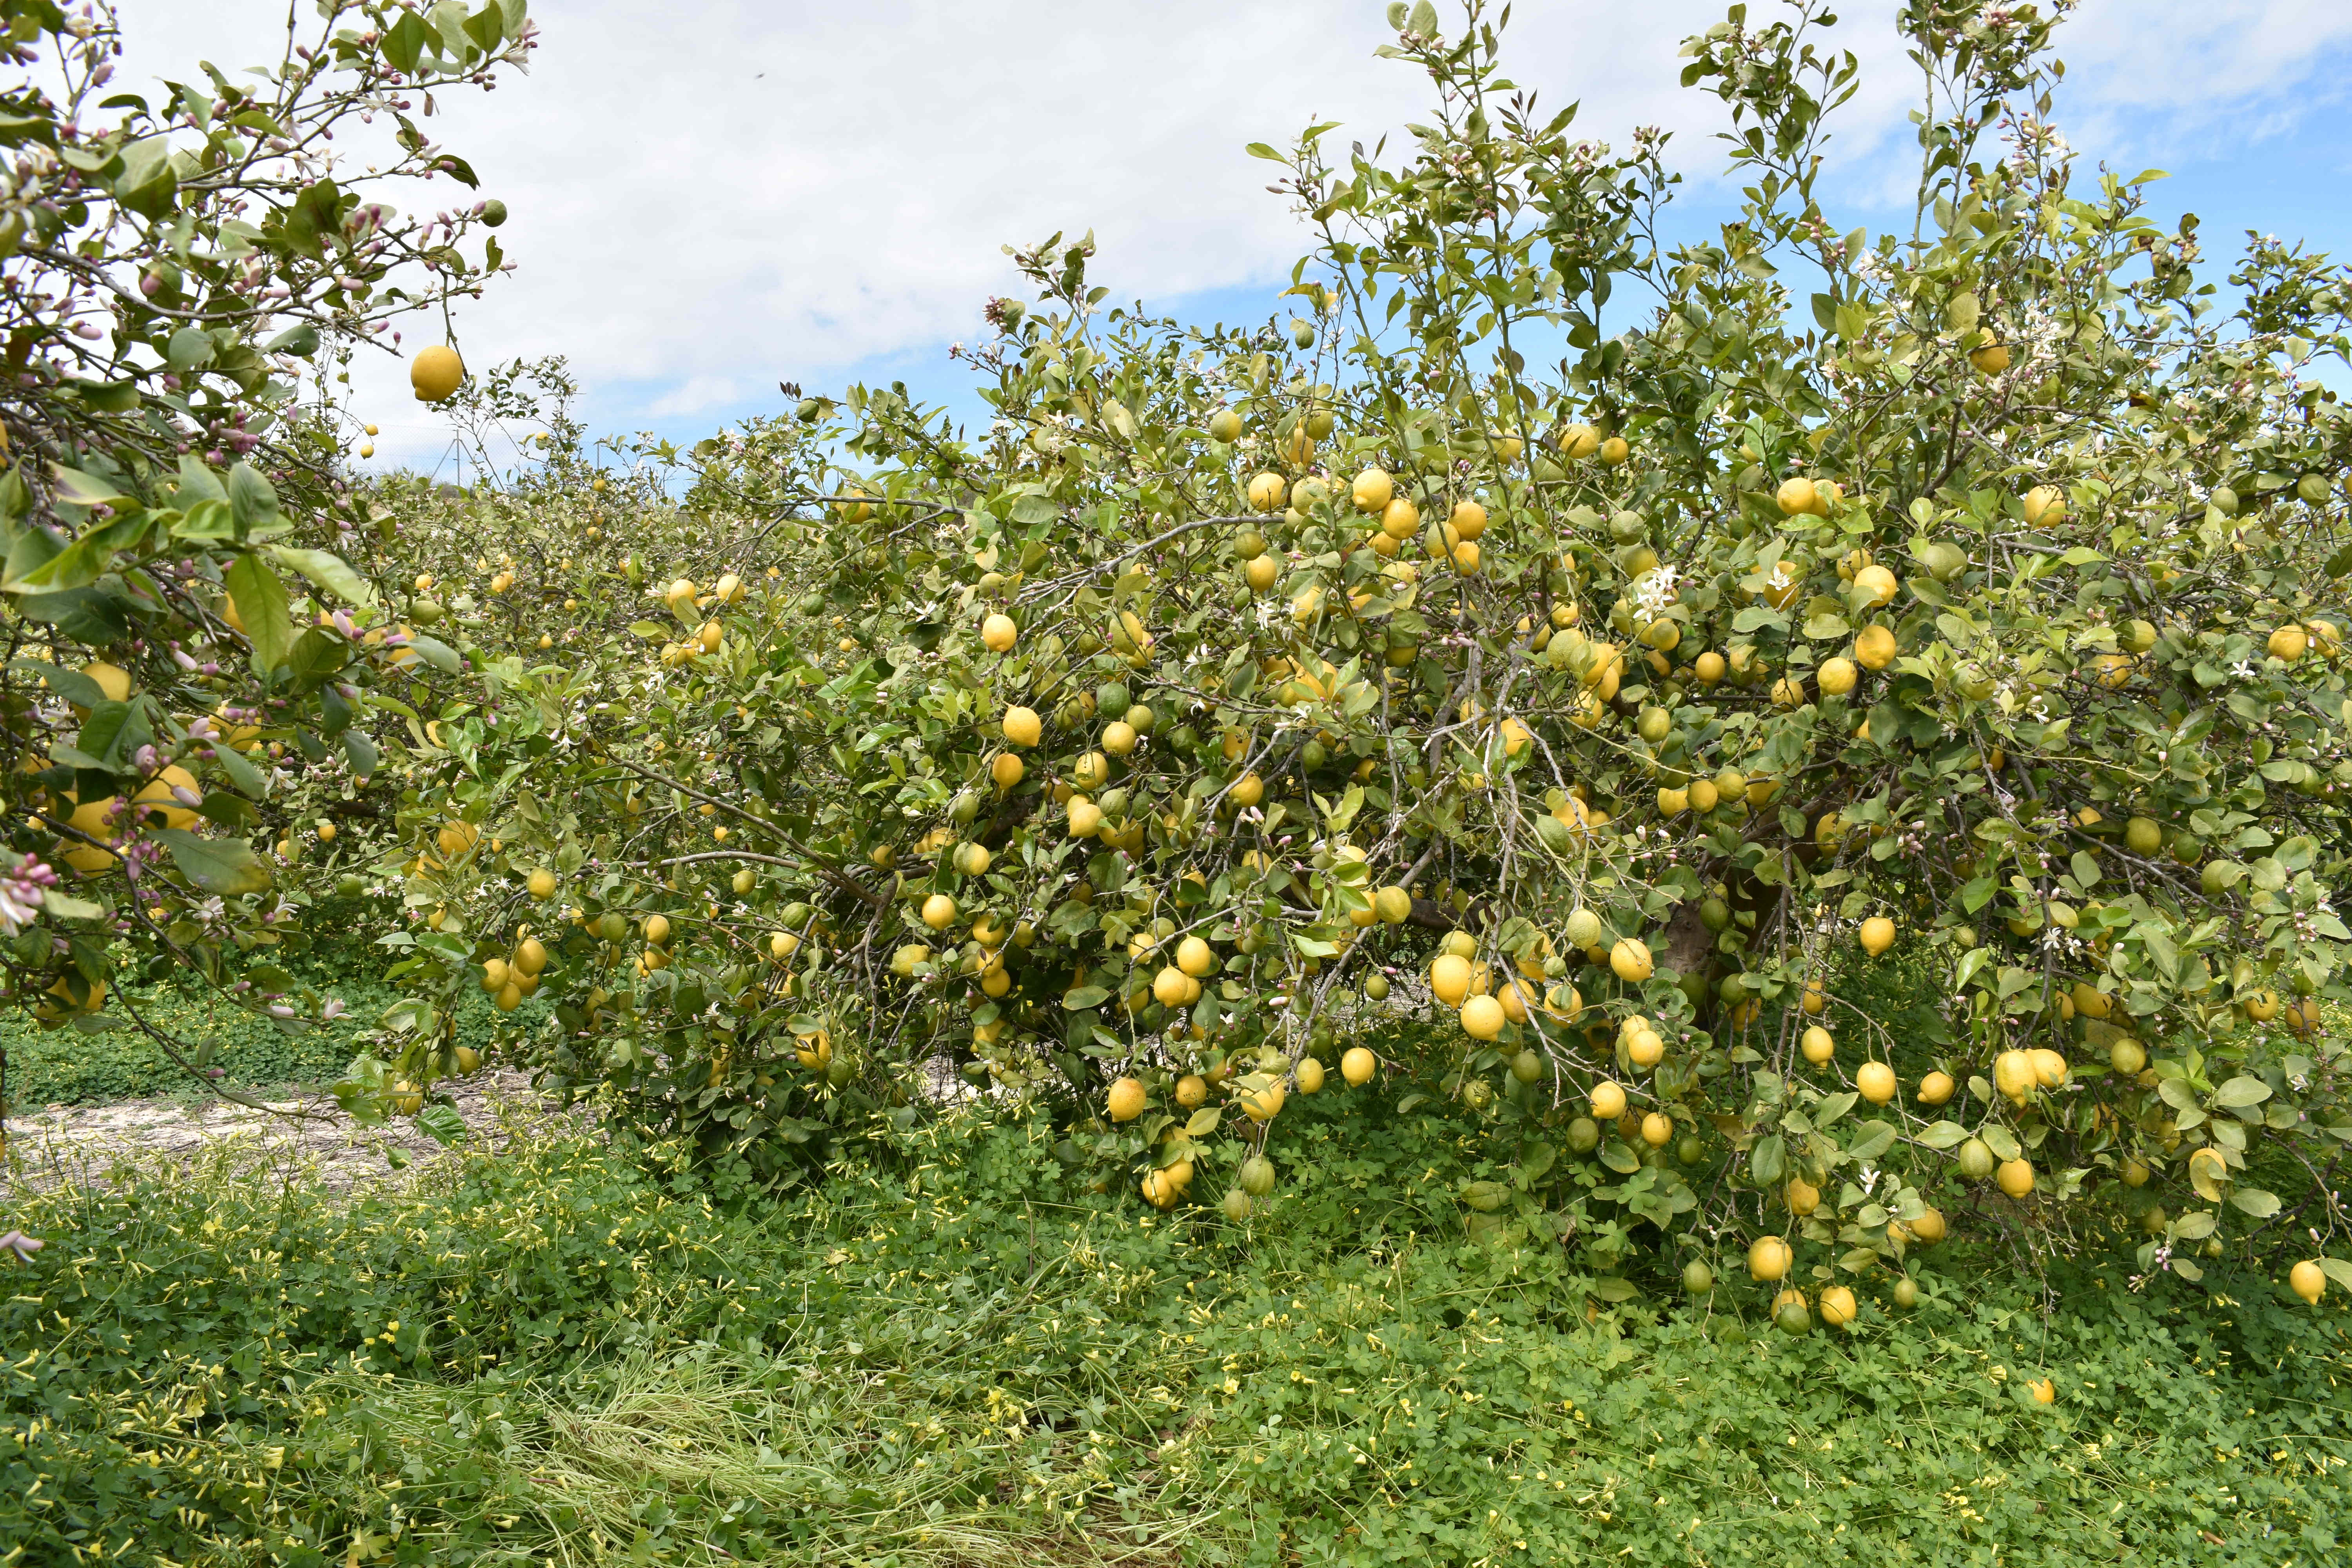 Lemon trees orchard in sustainable farming in southern Spain